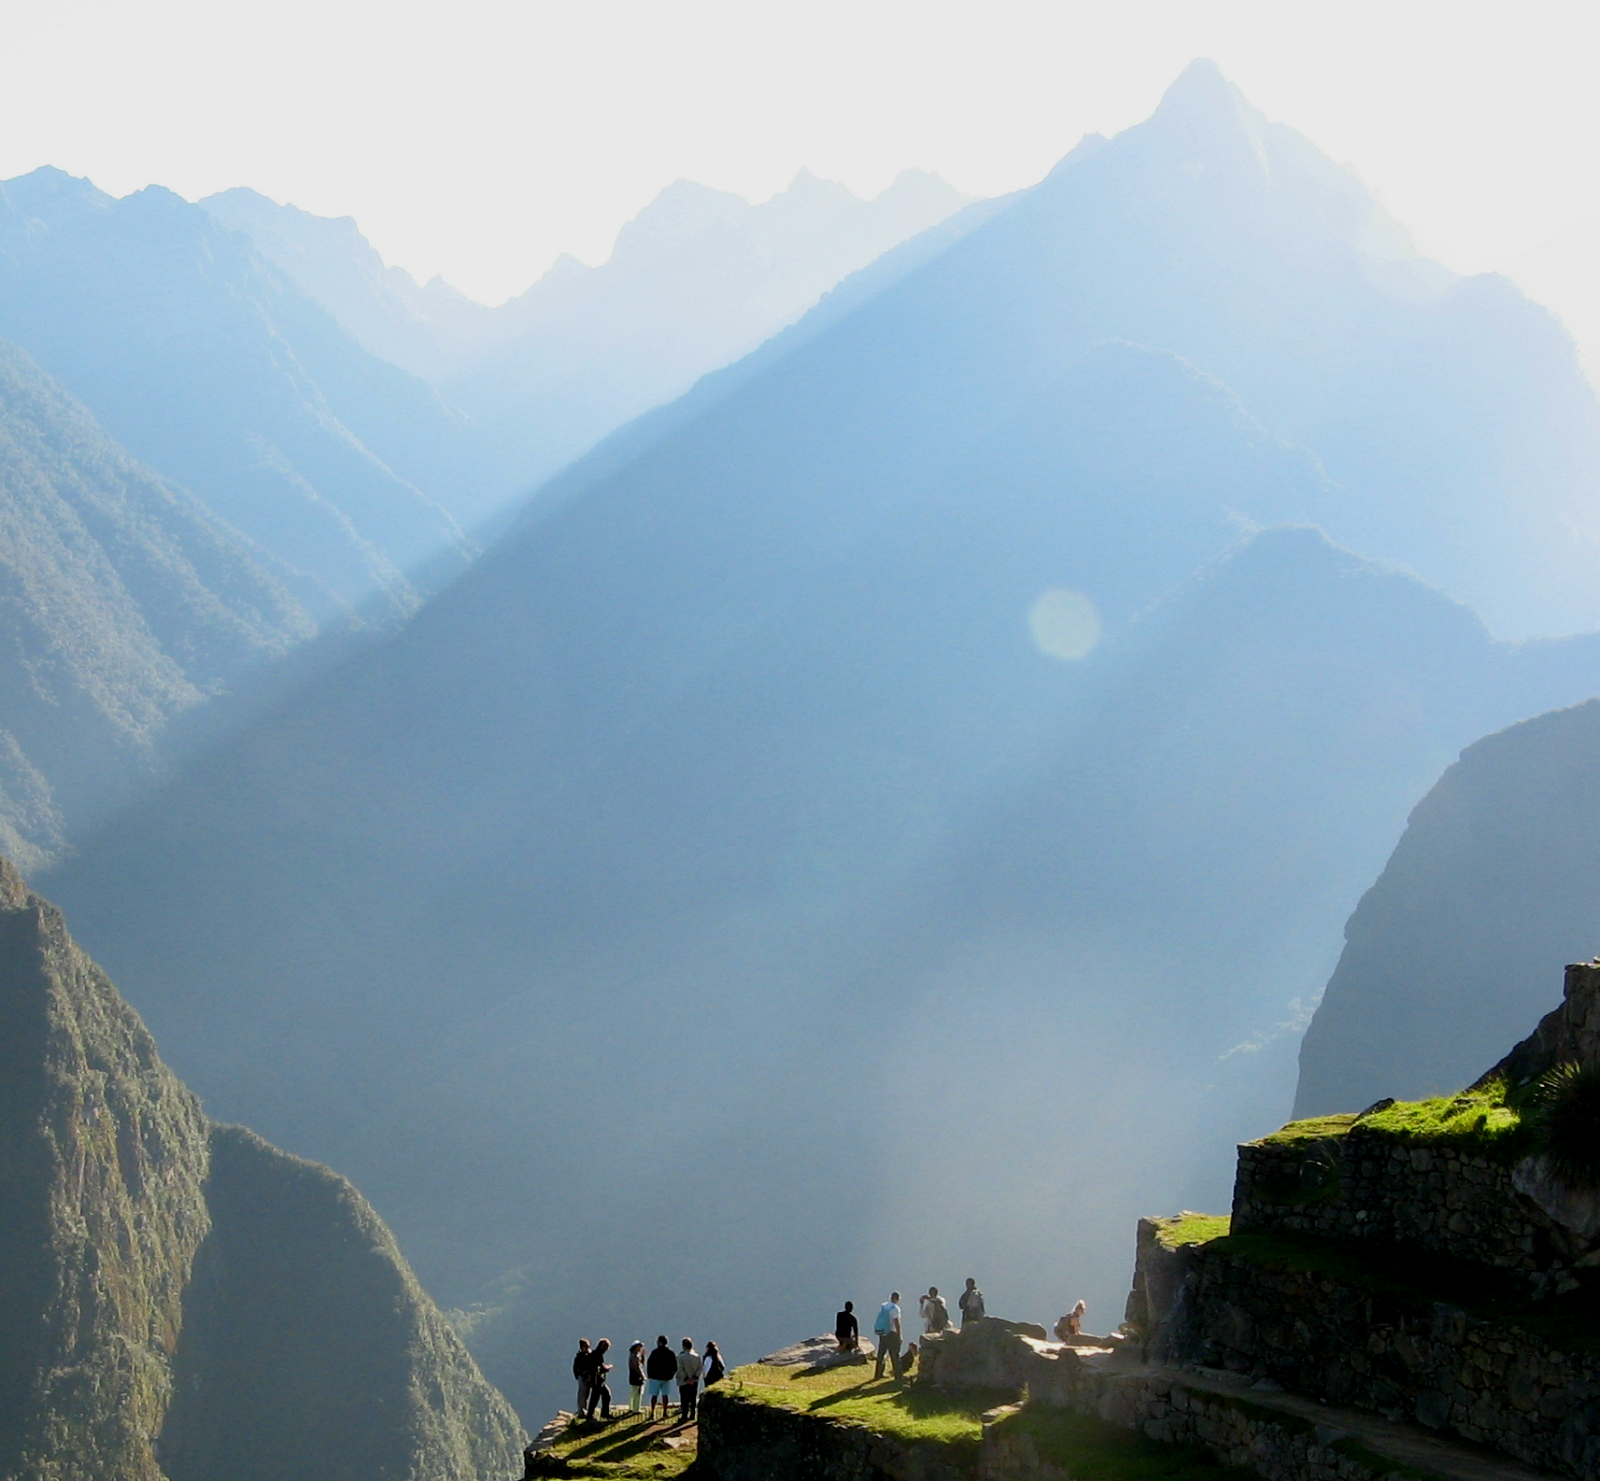 Blue haze atmosphere at Machu Picchu